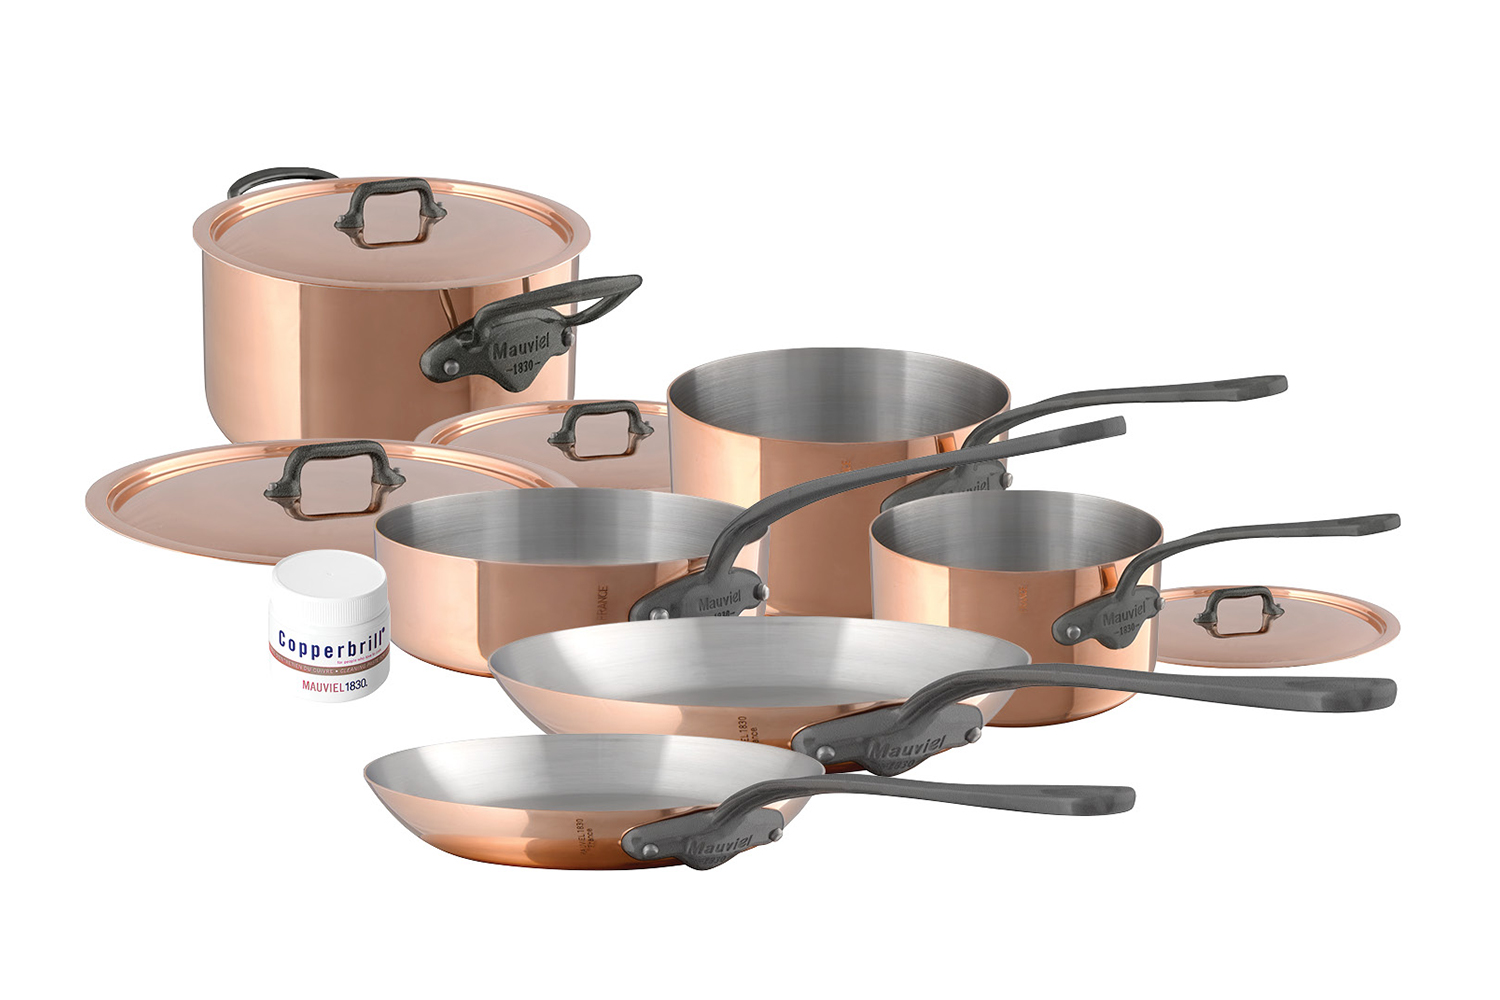 Mauviel Copper M'150C2 10 Piece Cookware Set